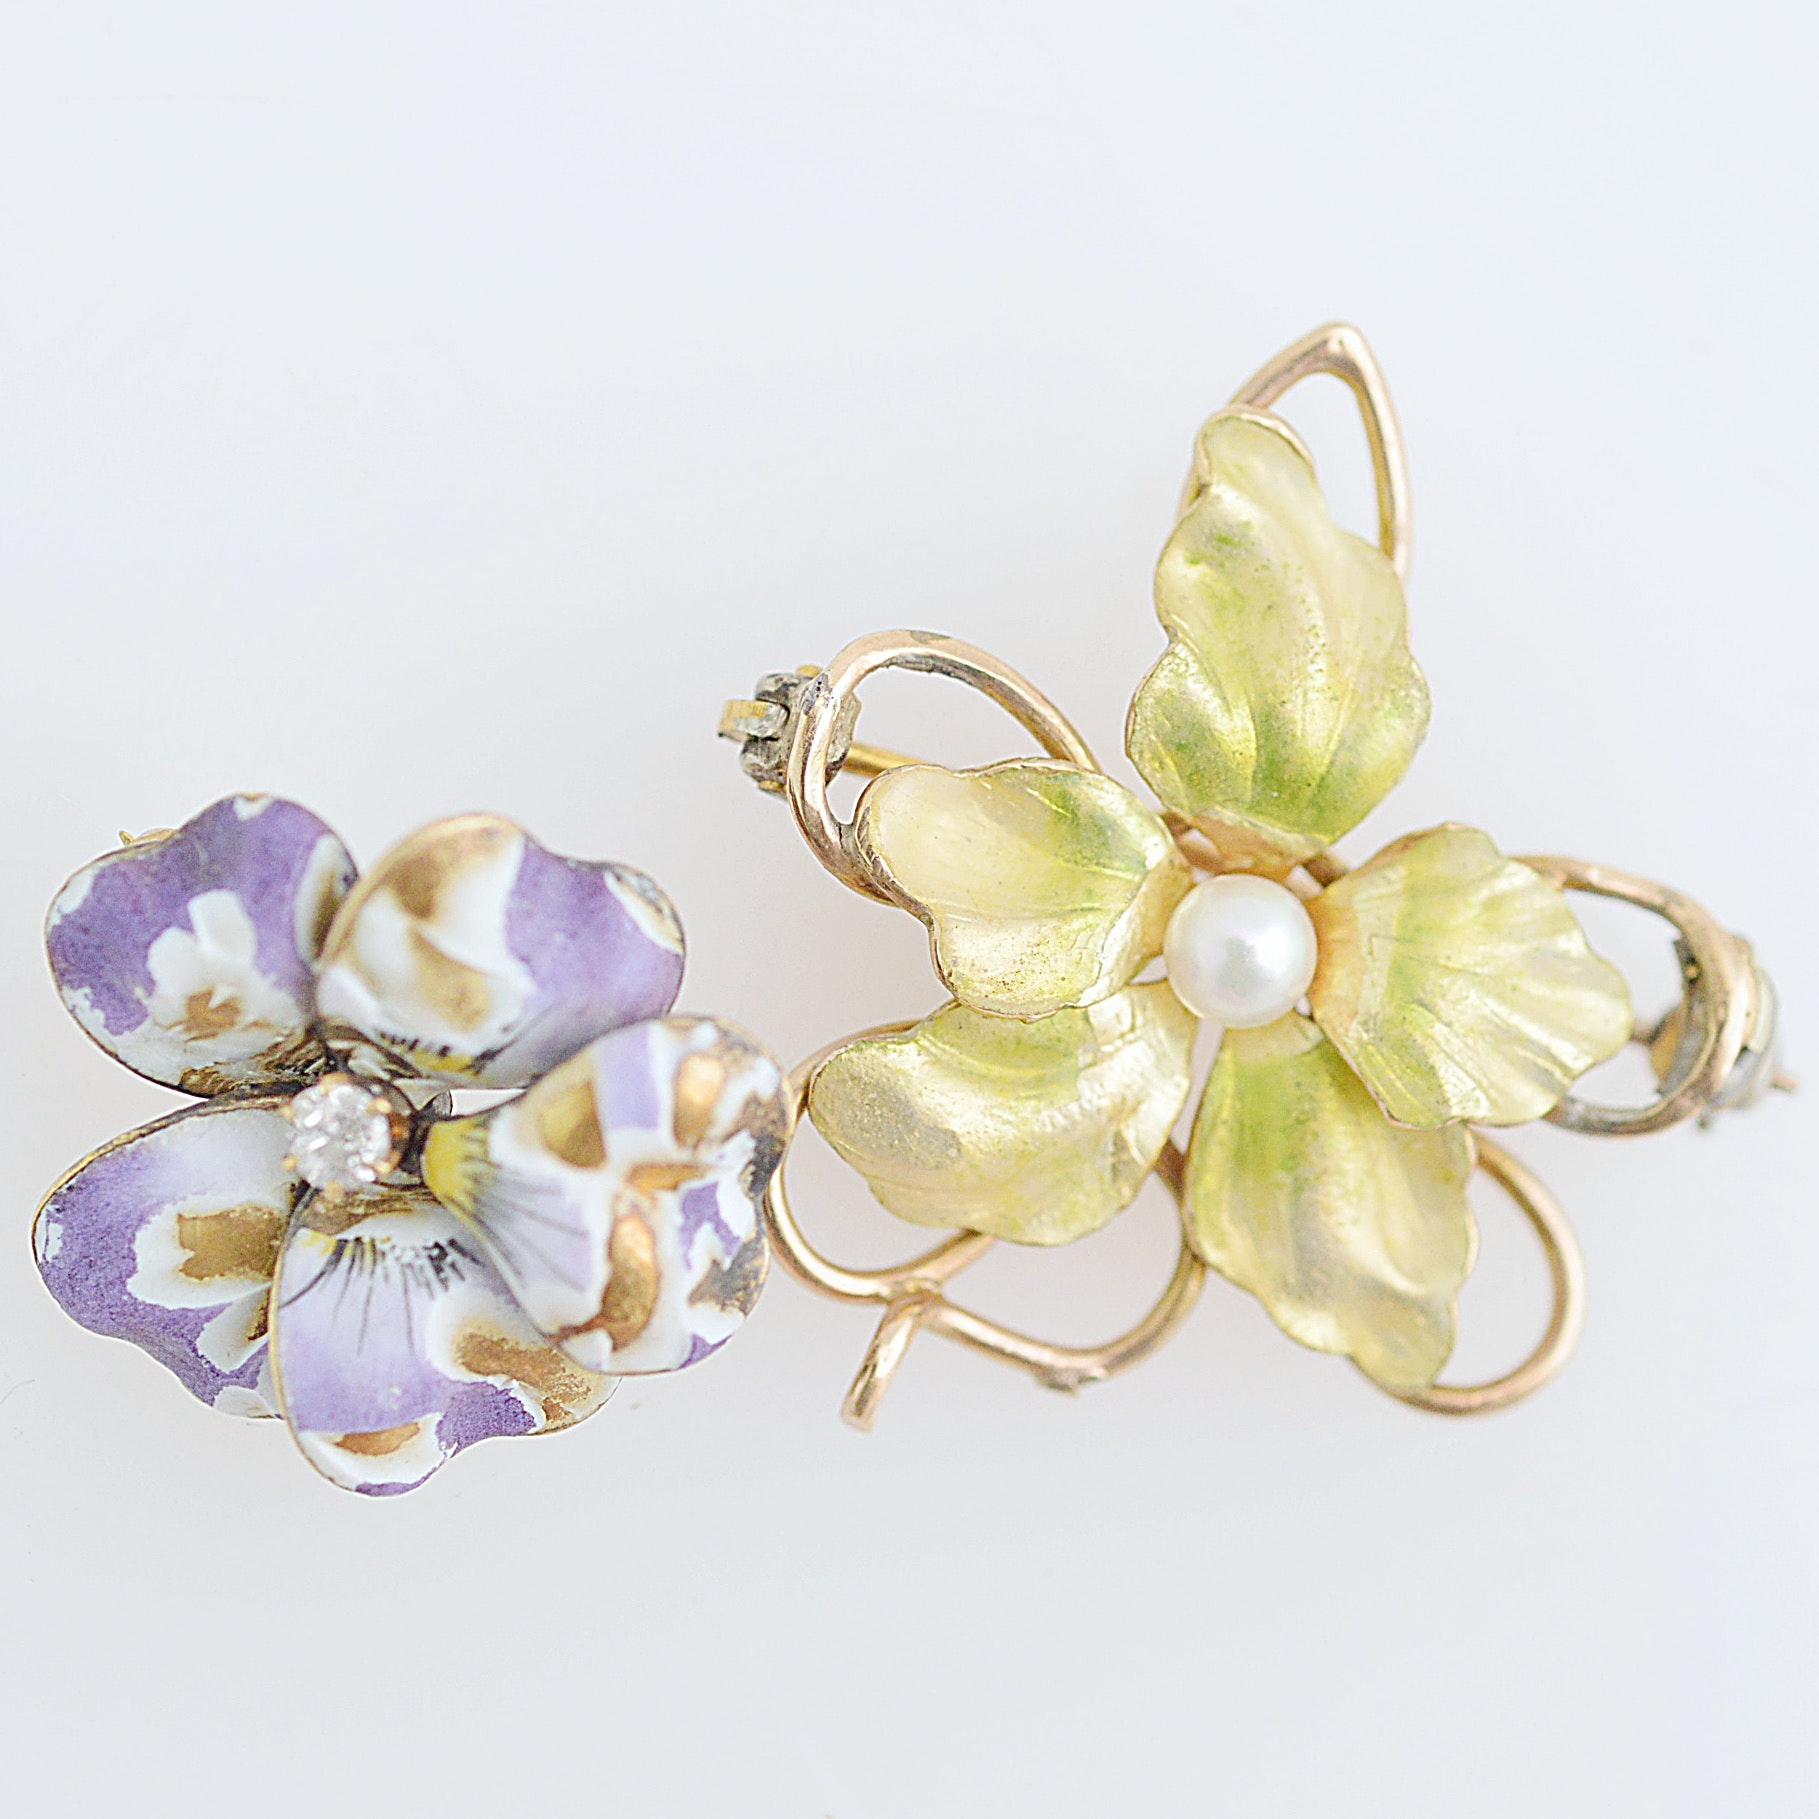 Vintage 10K Yellow Gold, Enamel, Pearl and Diamond Brooches